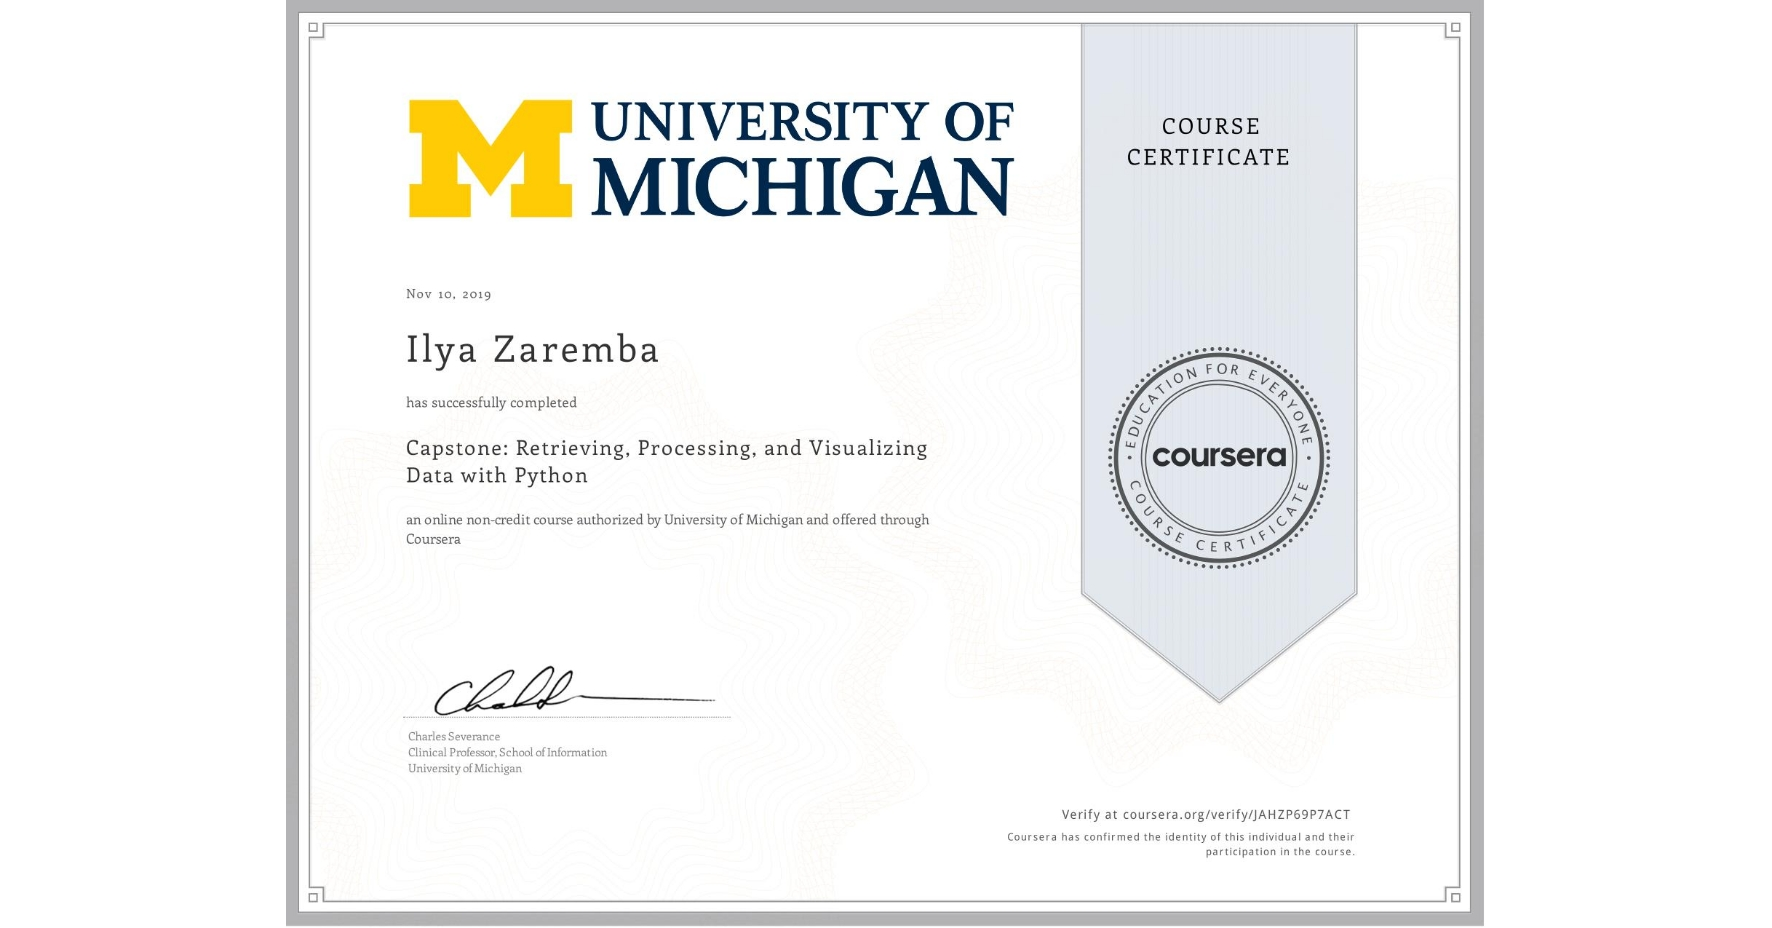 View certificate for Ilya Zaremba, Capstone: Retrieving, Processing, and Visualizing Data with Python, an online non-credit course authorized by University of Michigan and offered through Coursera